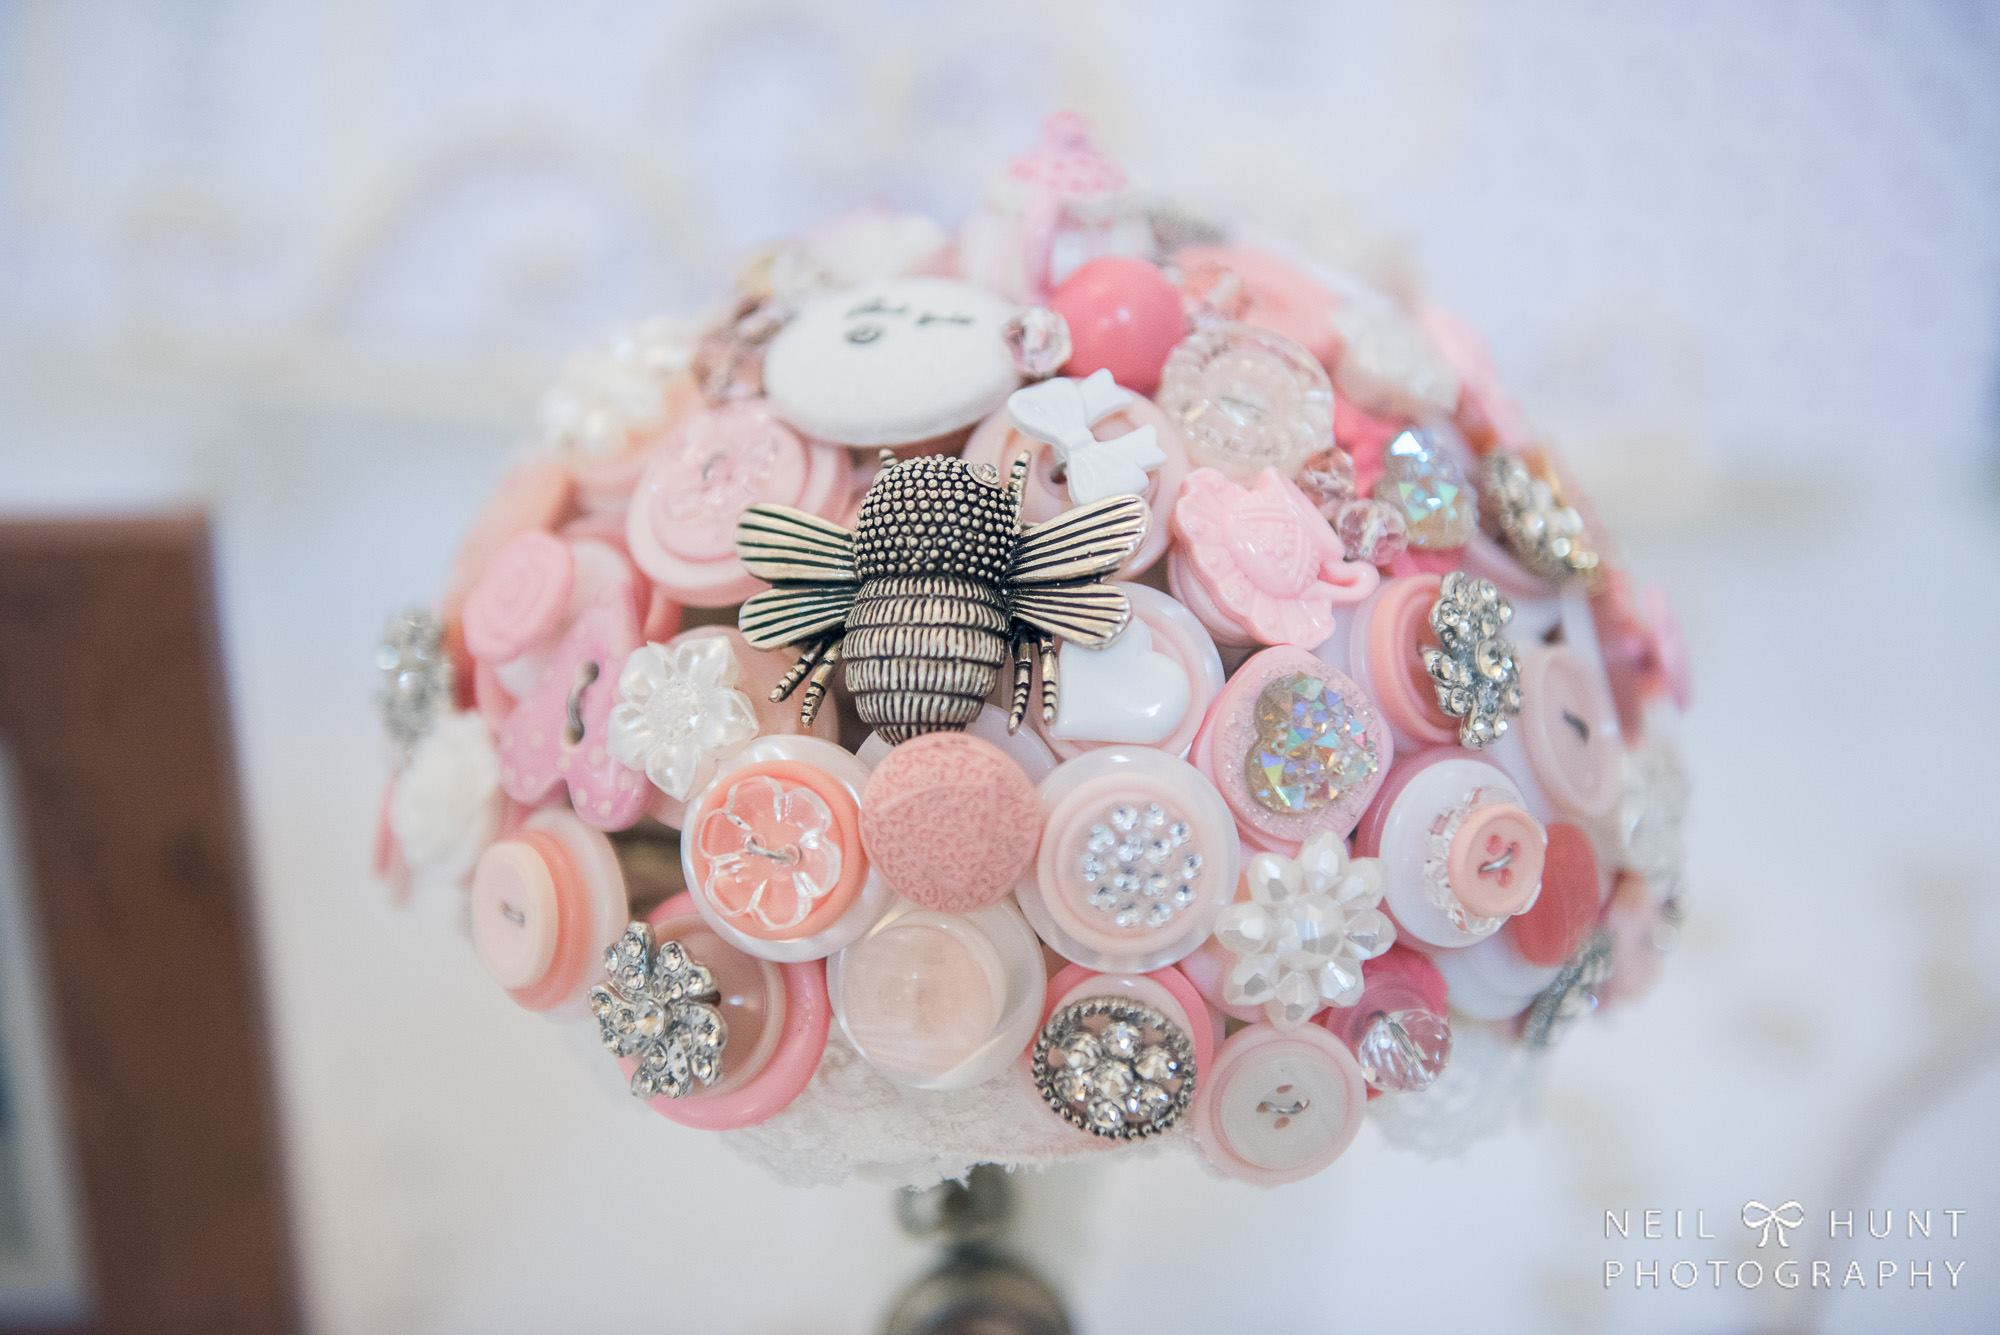 Alice in Wonderland wedding inspiration - button bouquet with bee - alternative and unconventional wedding